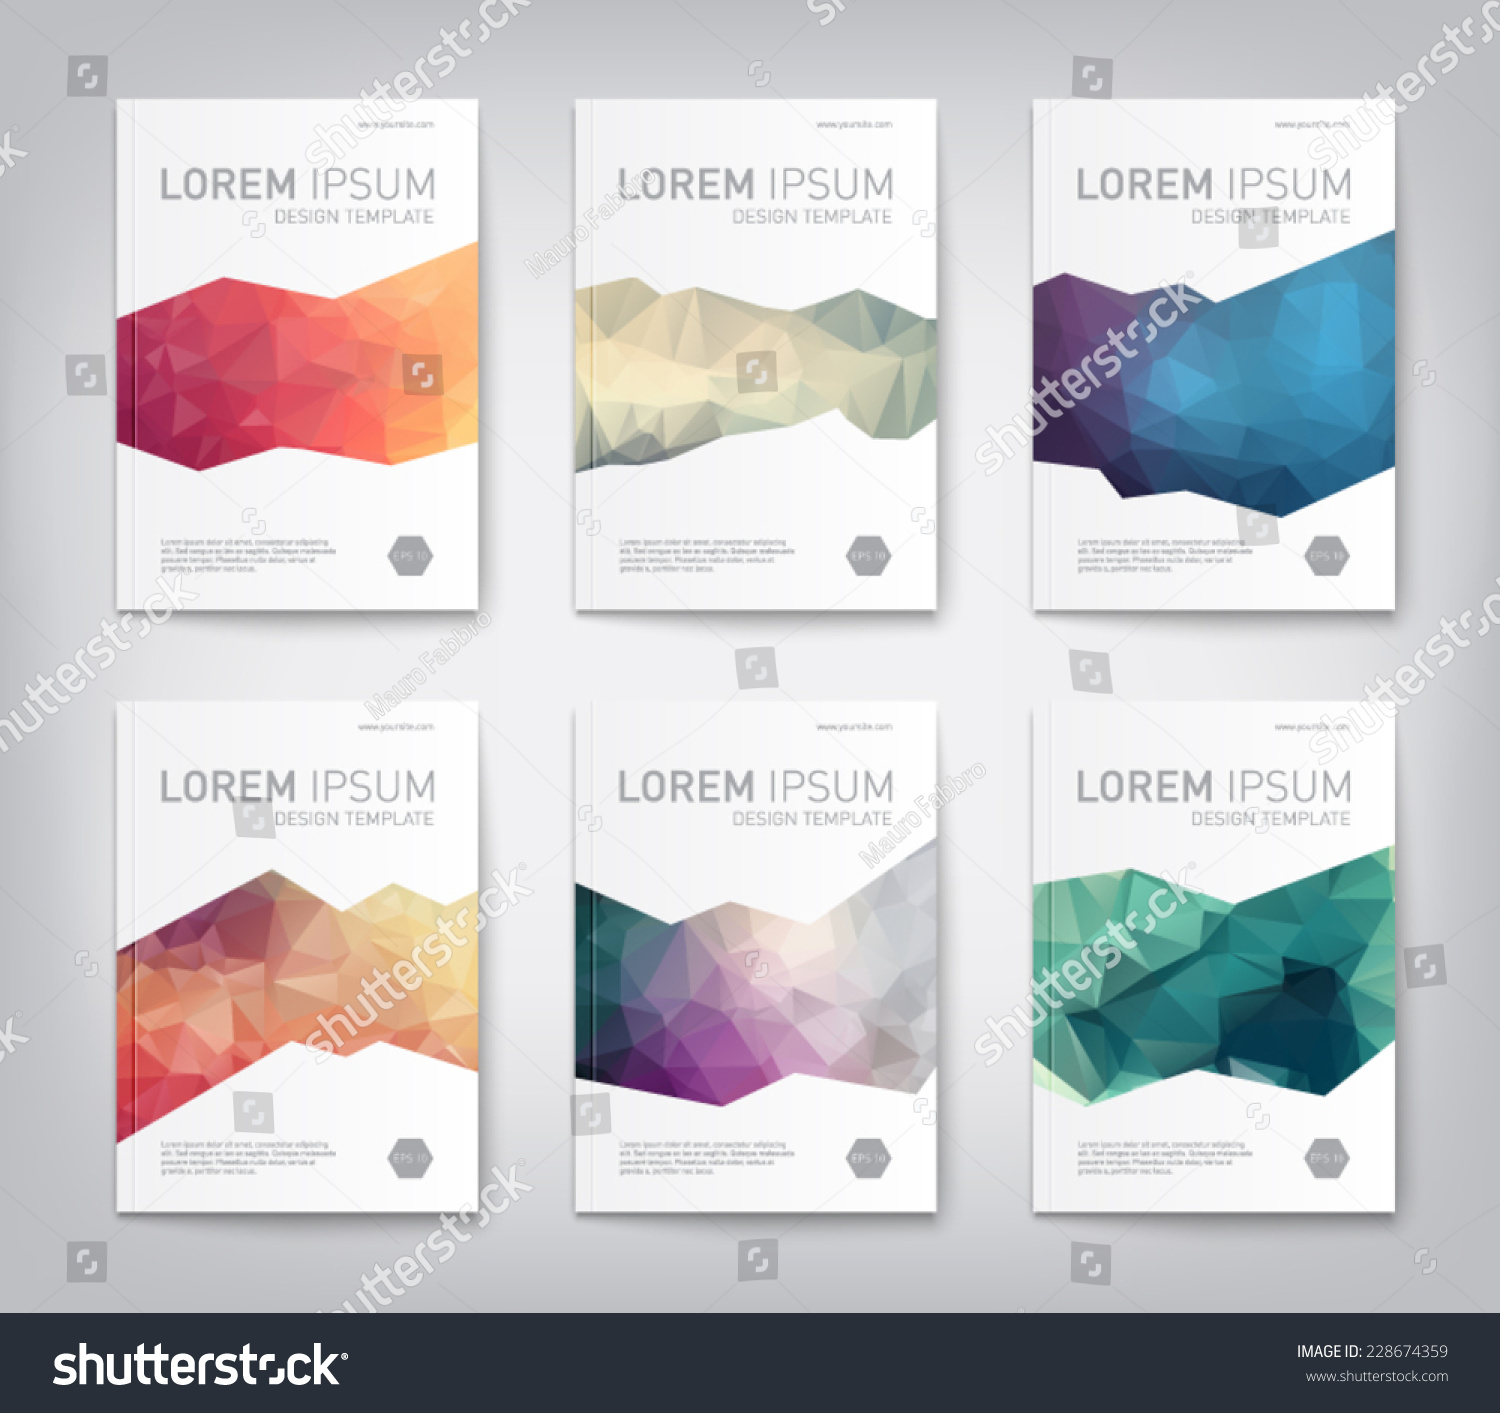 set abstract modern cover report brochure stock vector  set of abstract modern cover report brochure flyer design template geometric triangular style